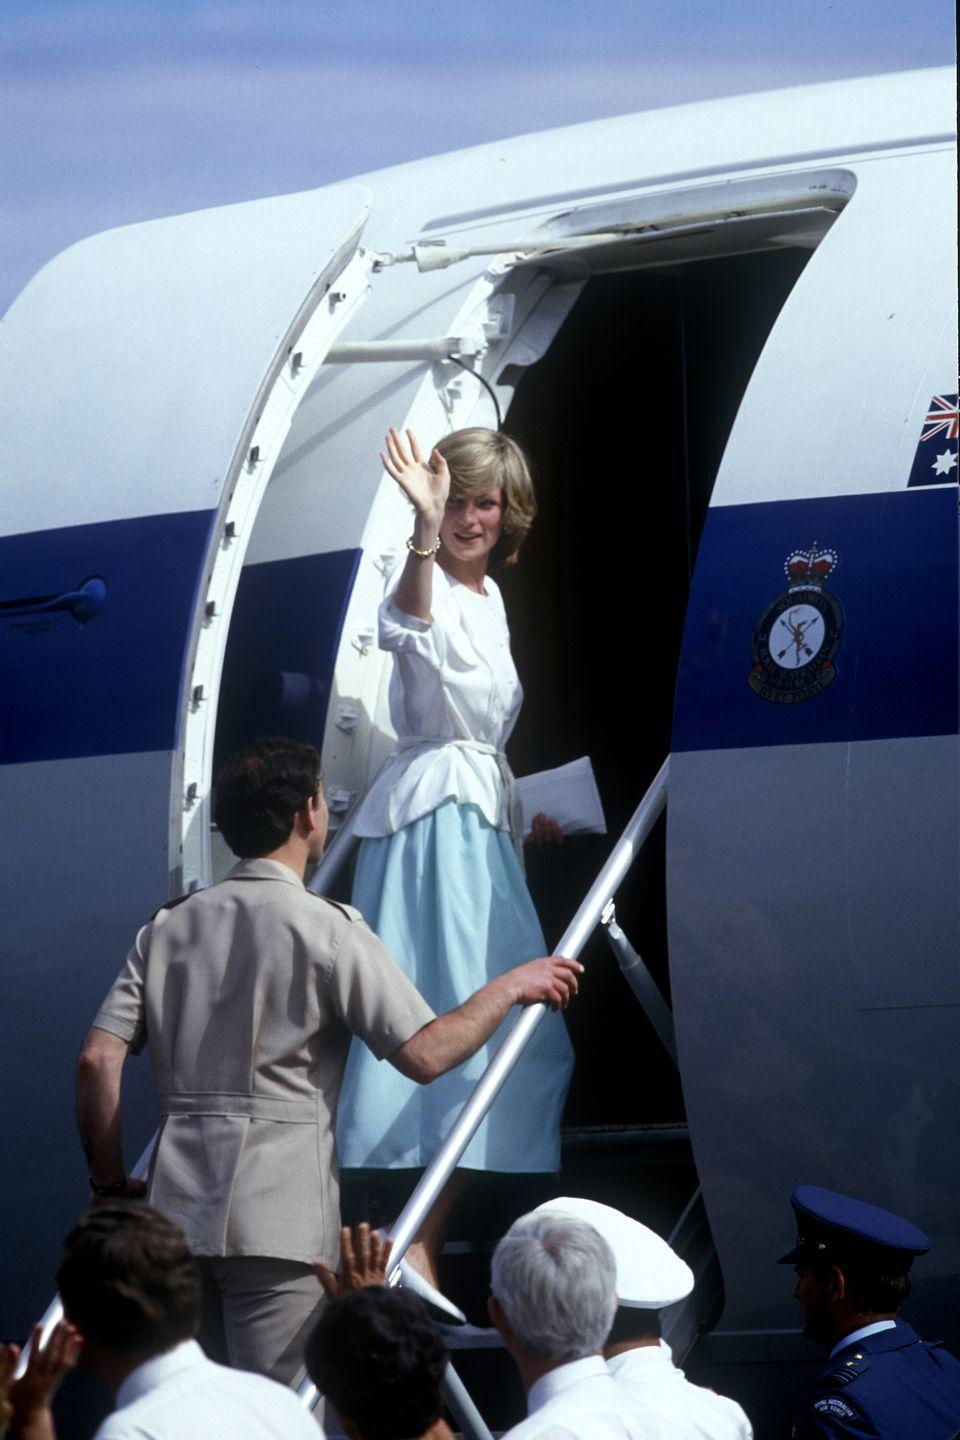 <p>Diana boards a plane in a white blouse and blue skirt as she leaves Alice Springs. </p>